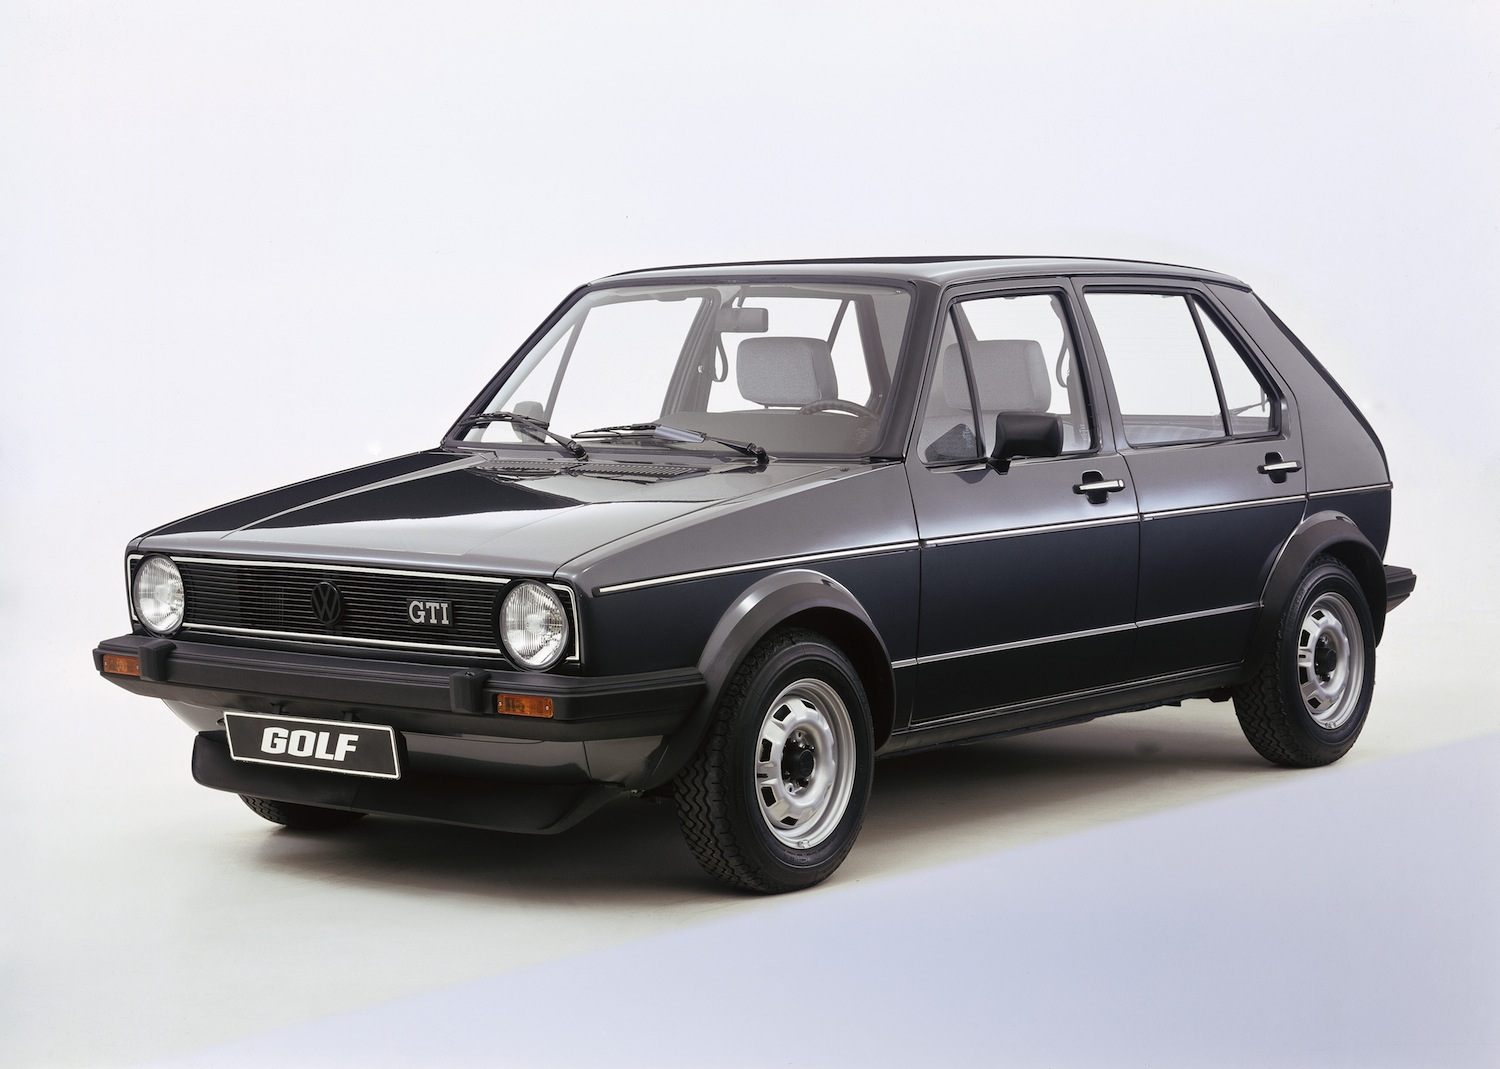 volkswagen golf 1 gti 1800. Black Bedroom Furniture Sets. Home Design Ideas